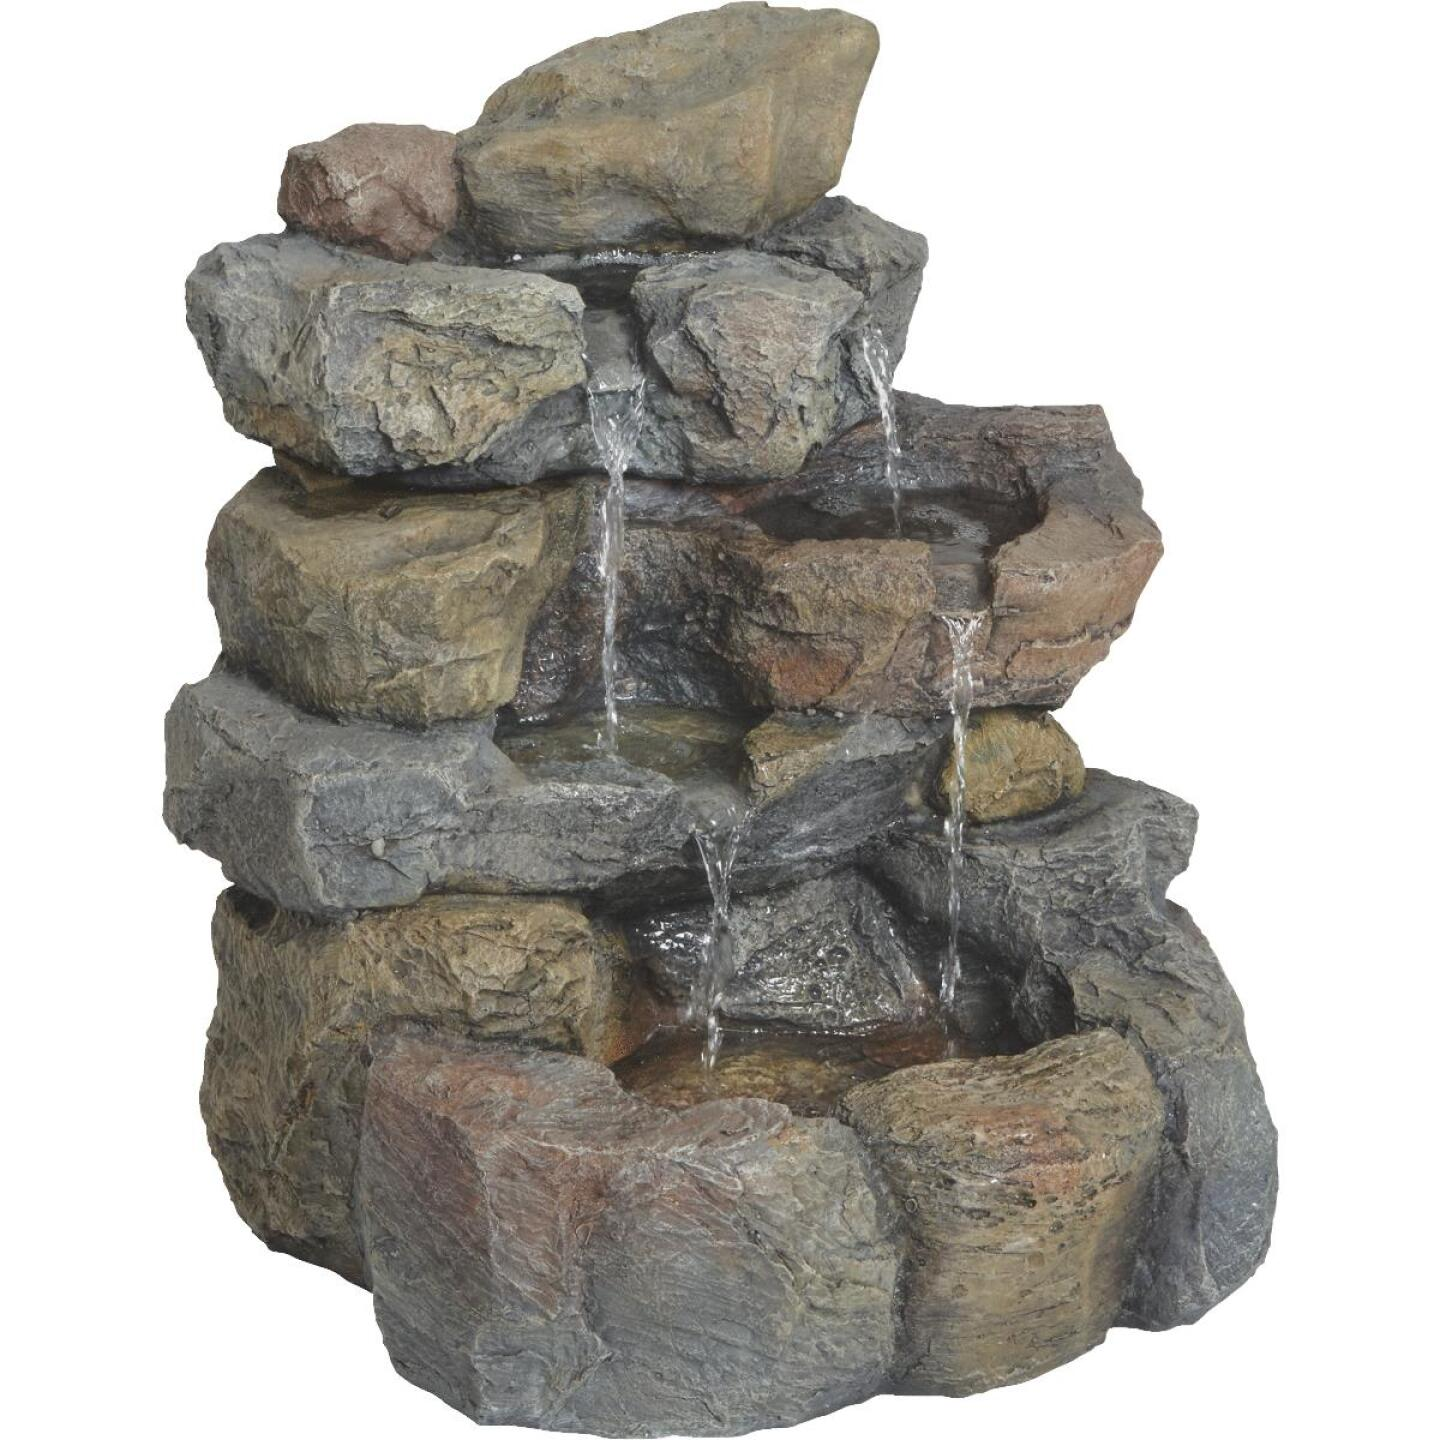 Best Garden 17 In. W. x 20 In. H. x 16 In. L. Resin Landscape Rock Fountain Image 1